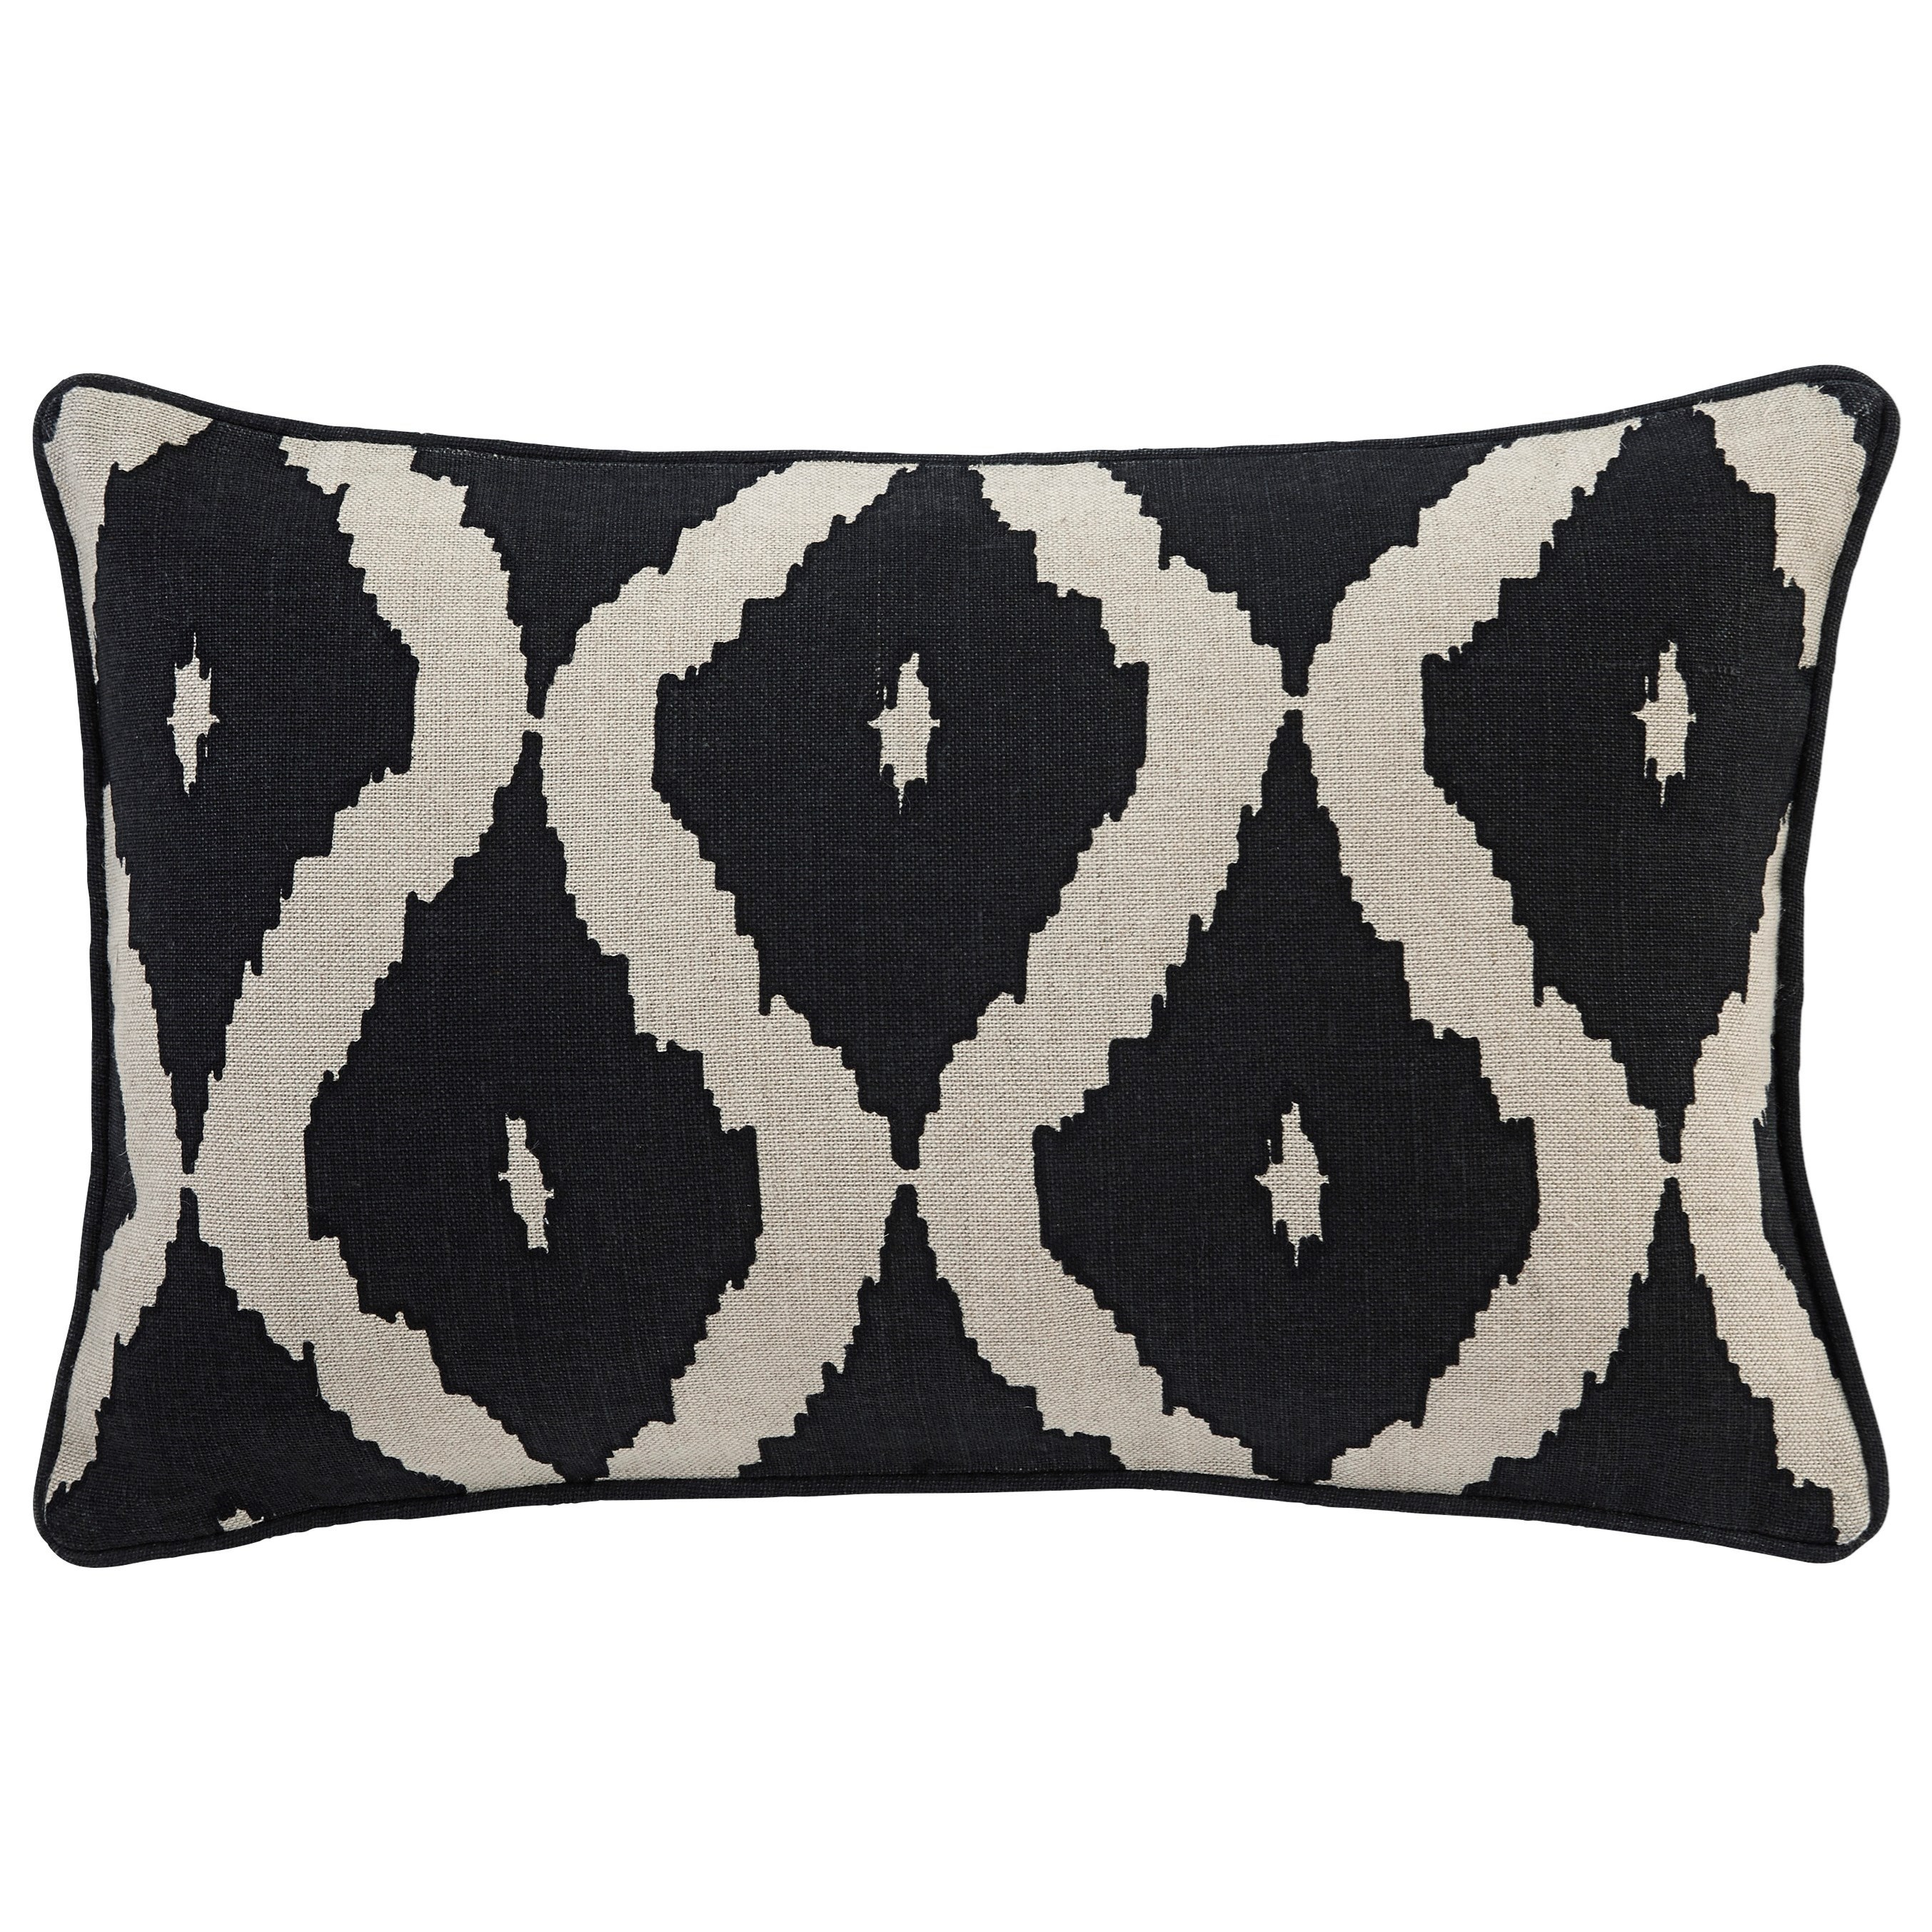 Signature Design by Ashley Pillows Tildy - Black/Natural Lumbar Pillow - Item Number: A1000651P